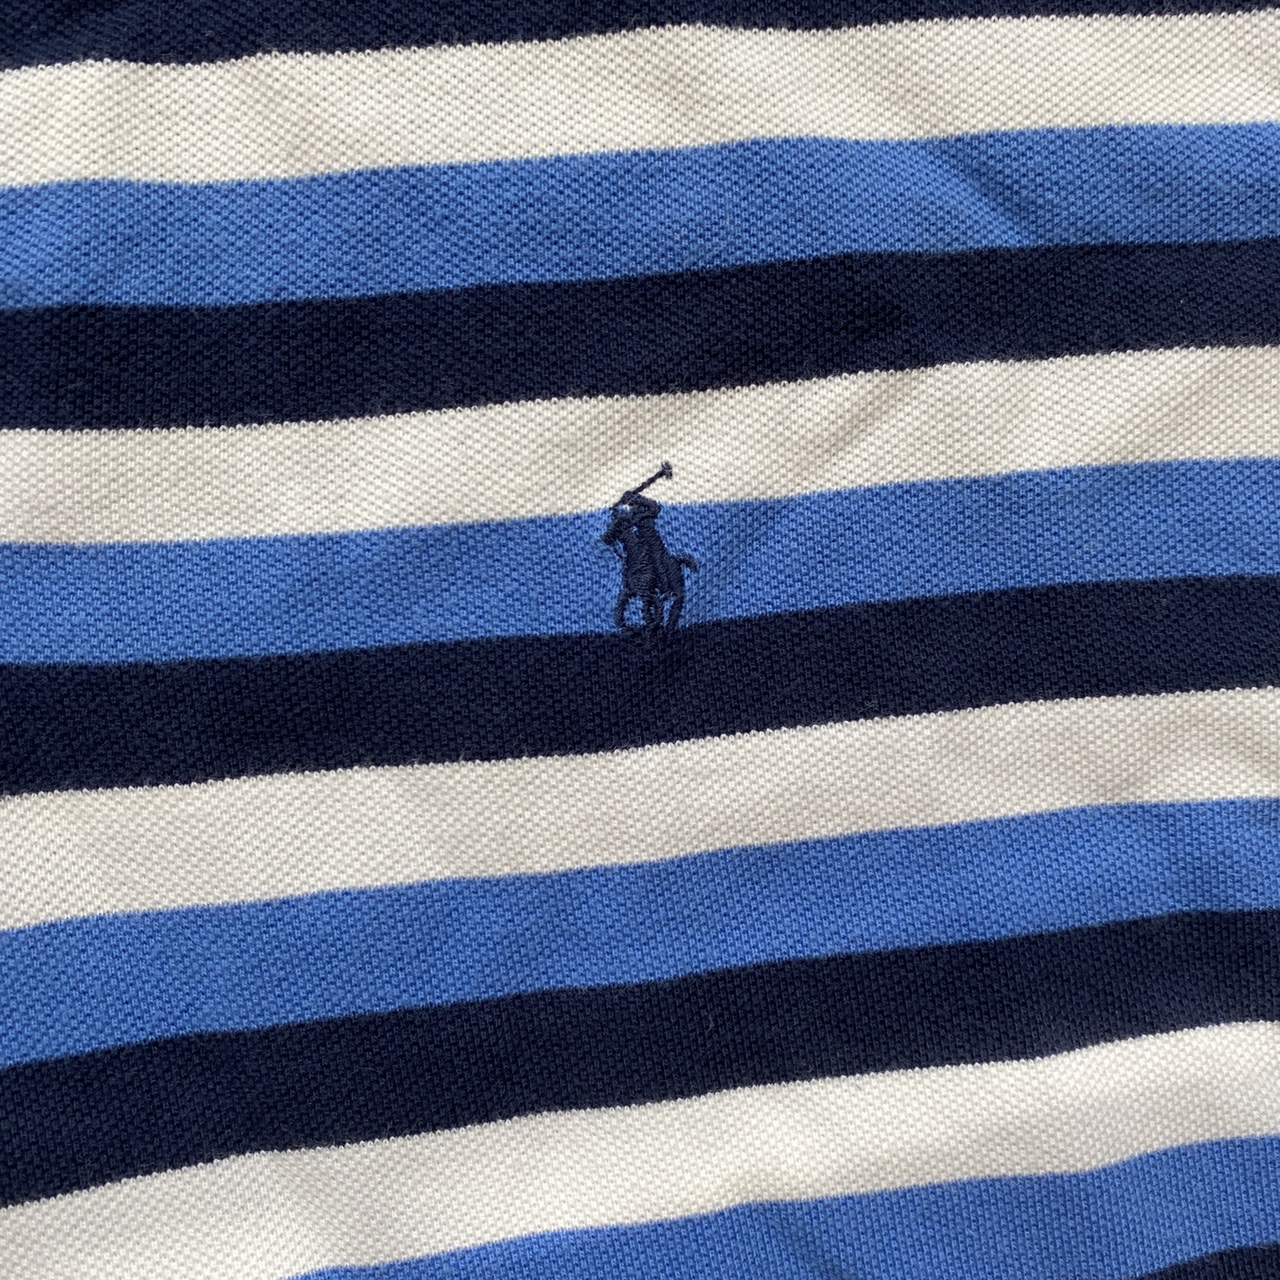 Product Image 2 - Striped Ralph Lauren polo